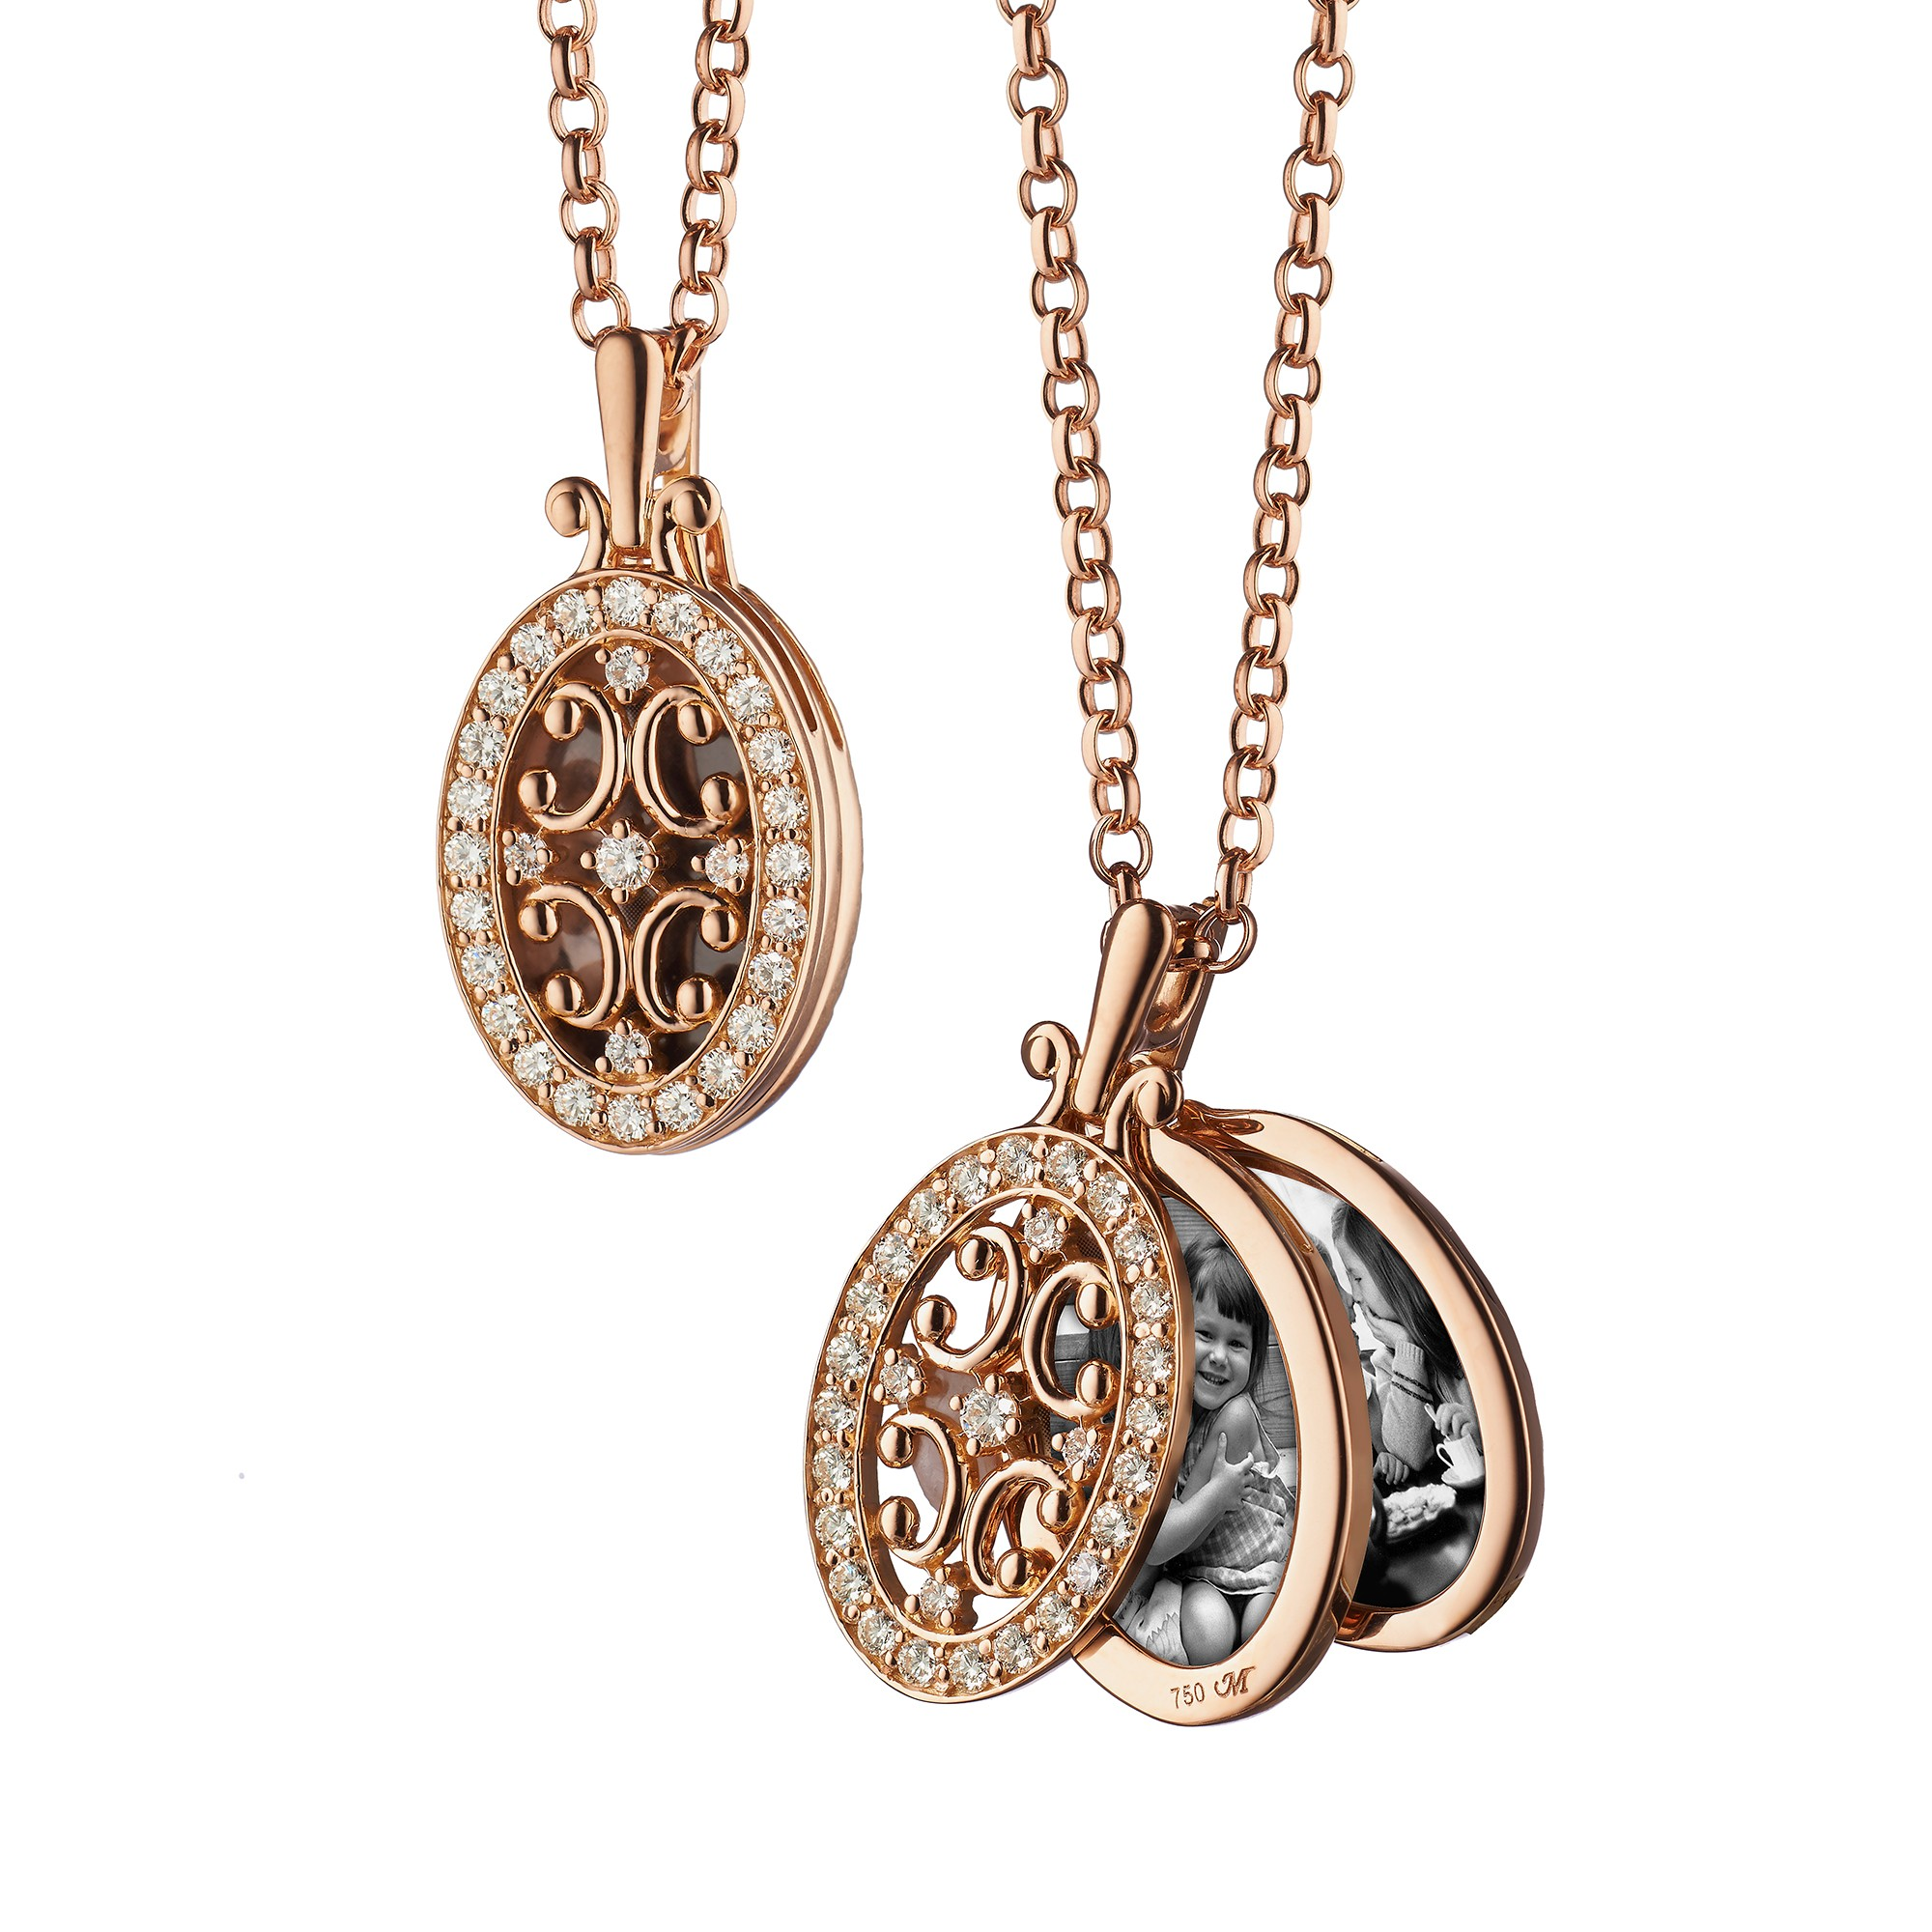 vermeil jewellery rose base lockets rosegold blanche memorykeeperpendant keeper gold memory locket lily pendant